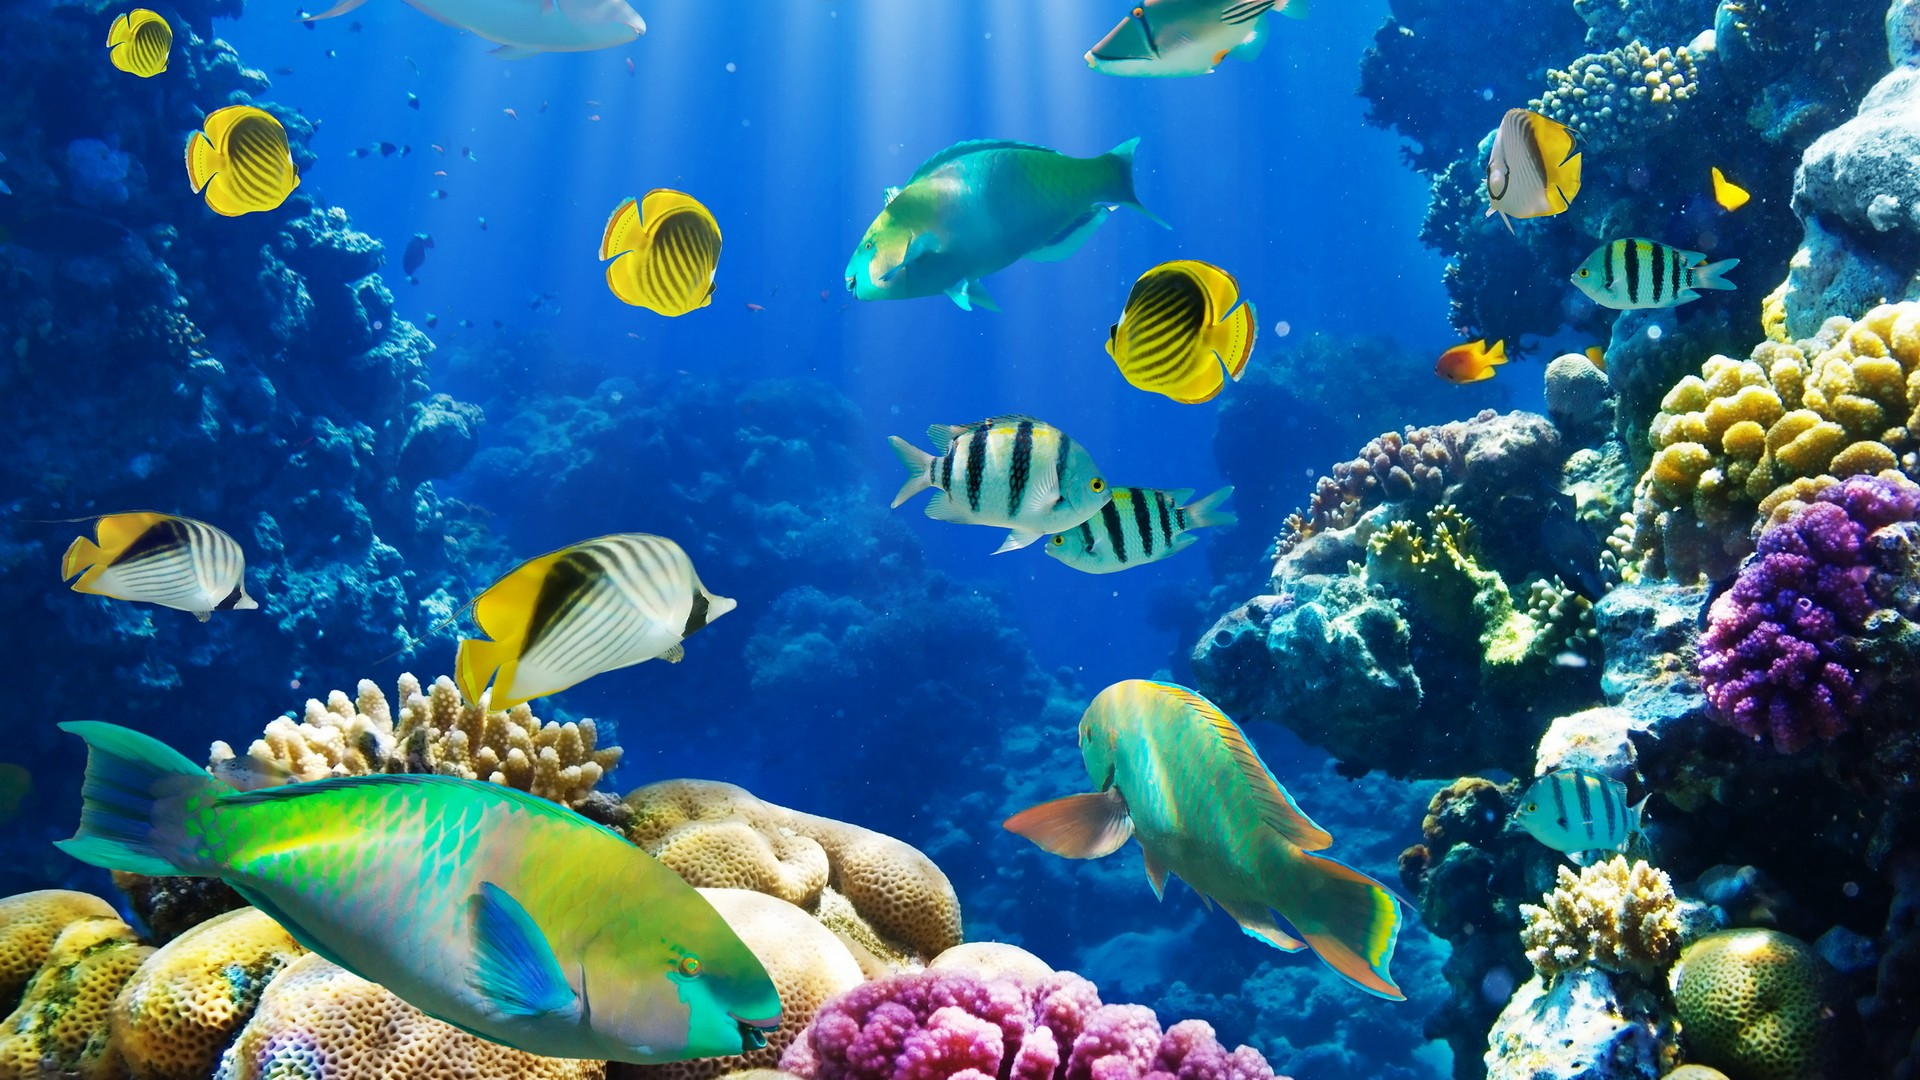 desktop live wallpaper fish aquarium desktop live wallpaper fish tank 1920x1080